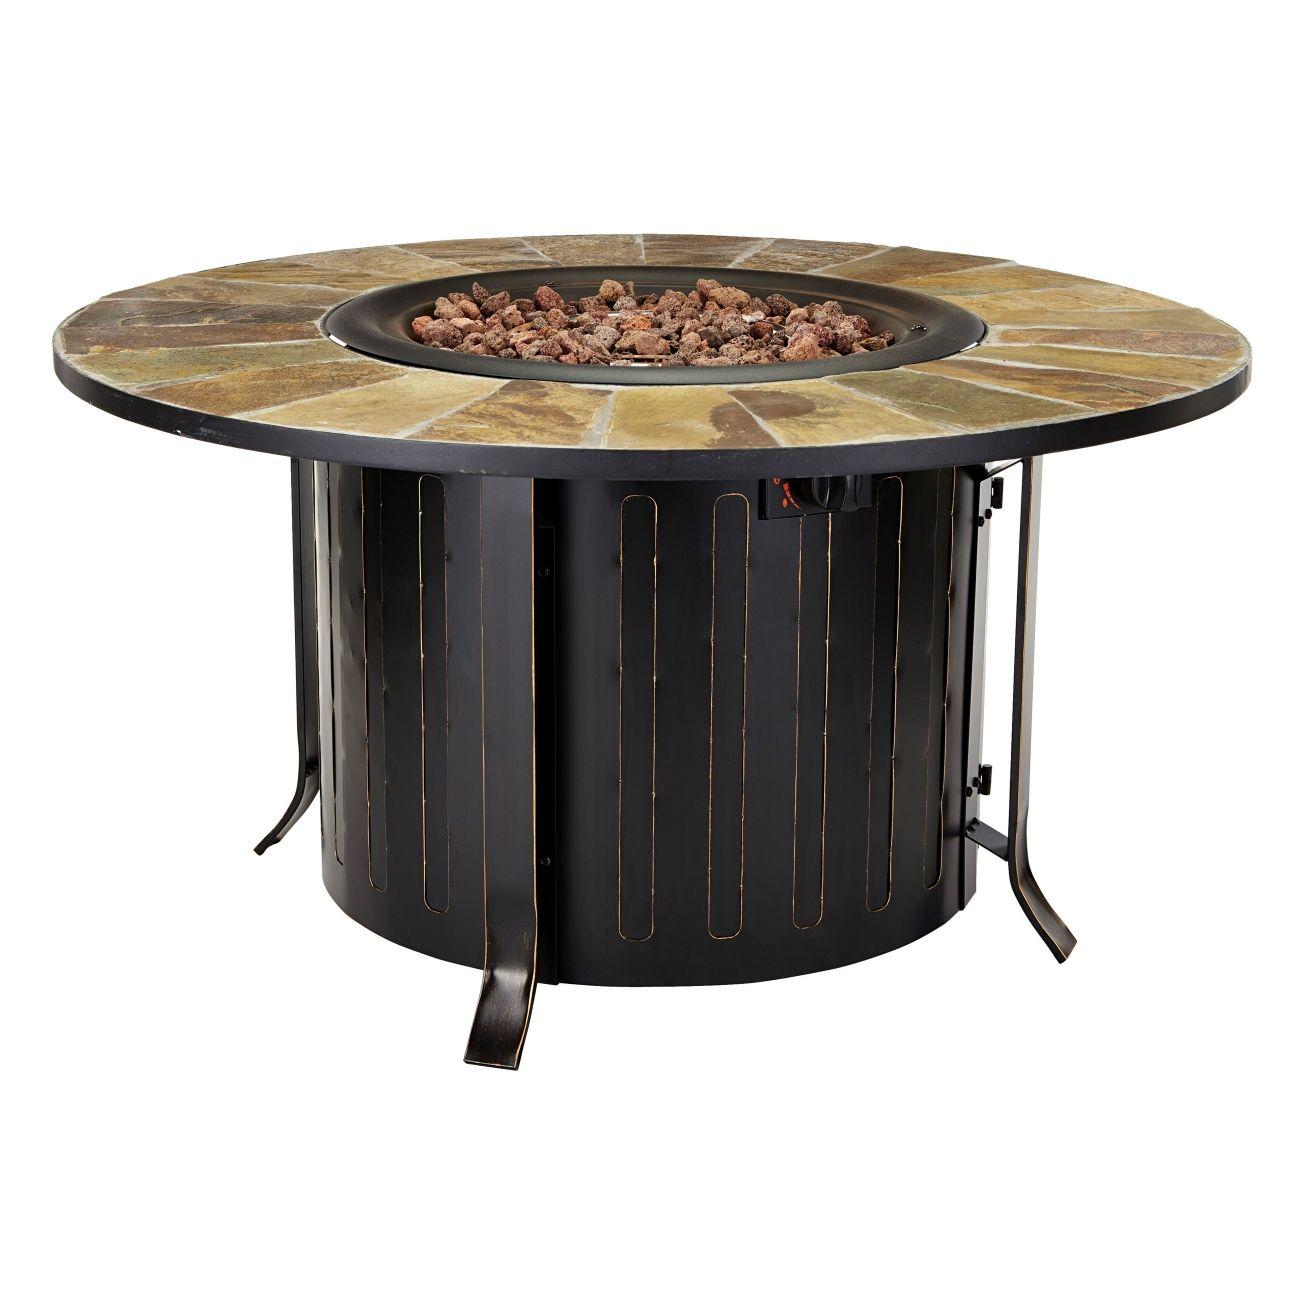 Montini 46in Gas Fire Table (68448A) - Outdoor Fireplaces ... on Ace Hardware Fire Pit id=29839